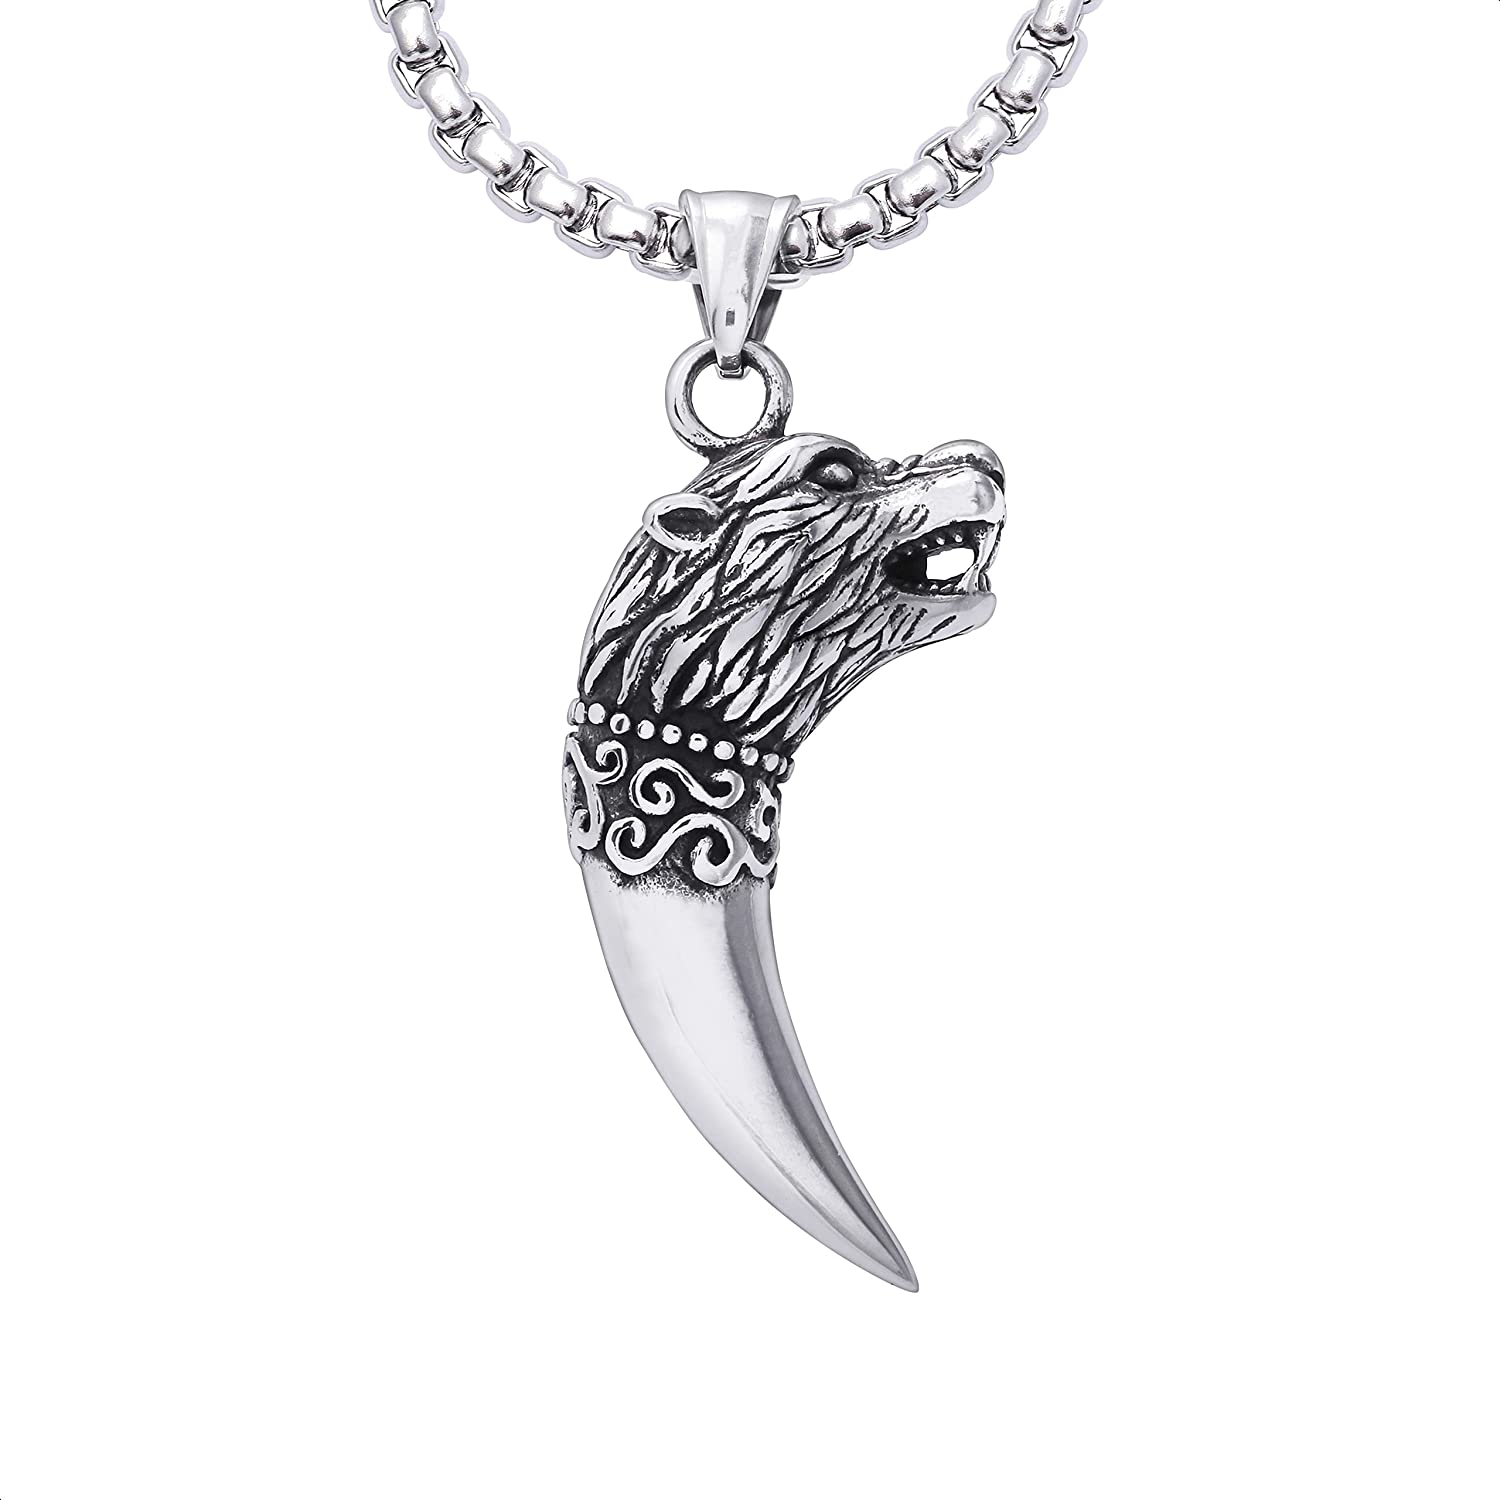 HAQUIL Wolf Tooth Necklace, Stainless Steel Viking Wolf Fang Pendant, Wolf Gift